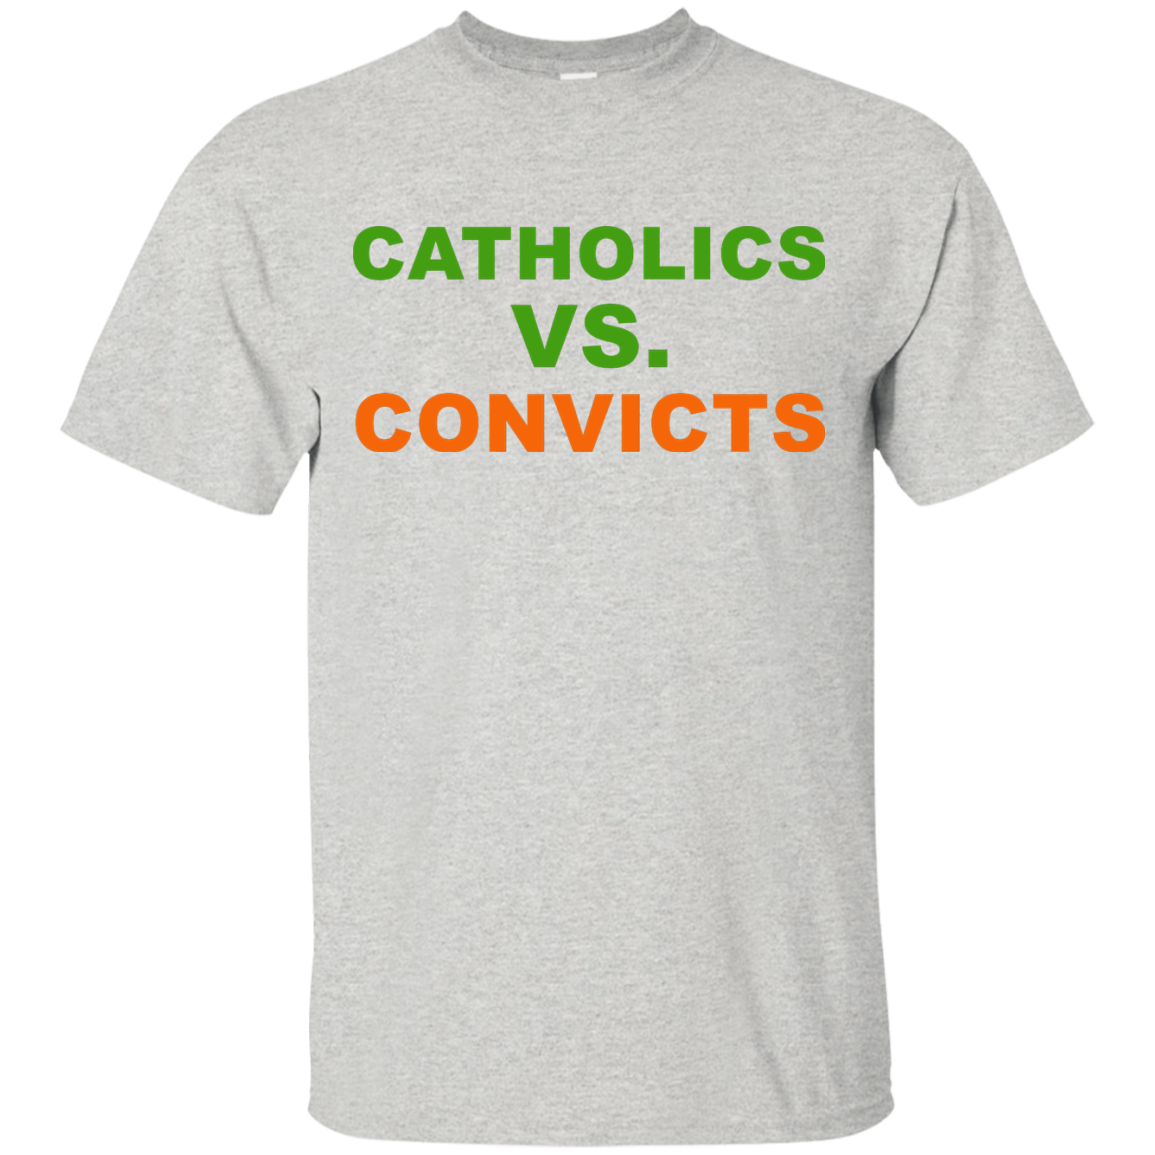 Catholics Vs Convicts T Shirt, Hoodies, Tank Top